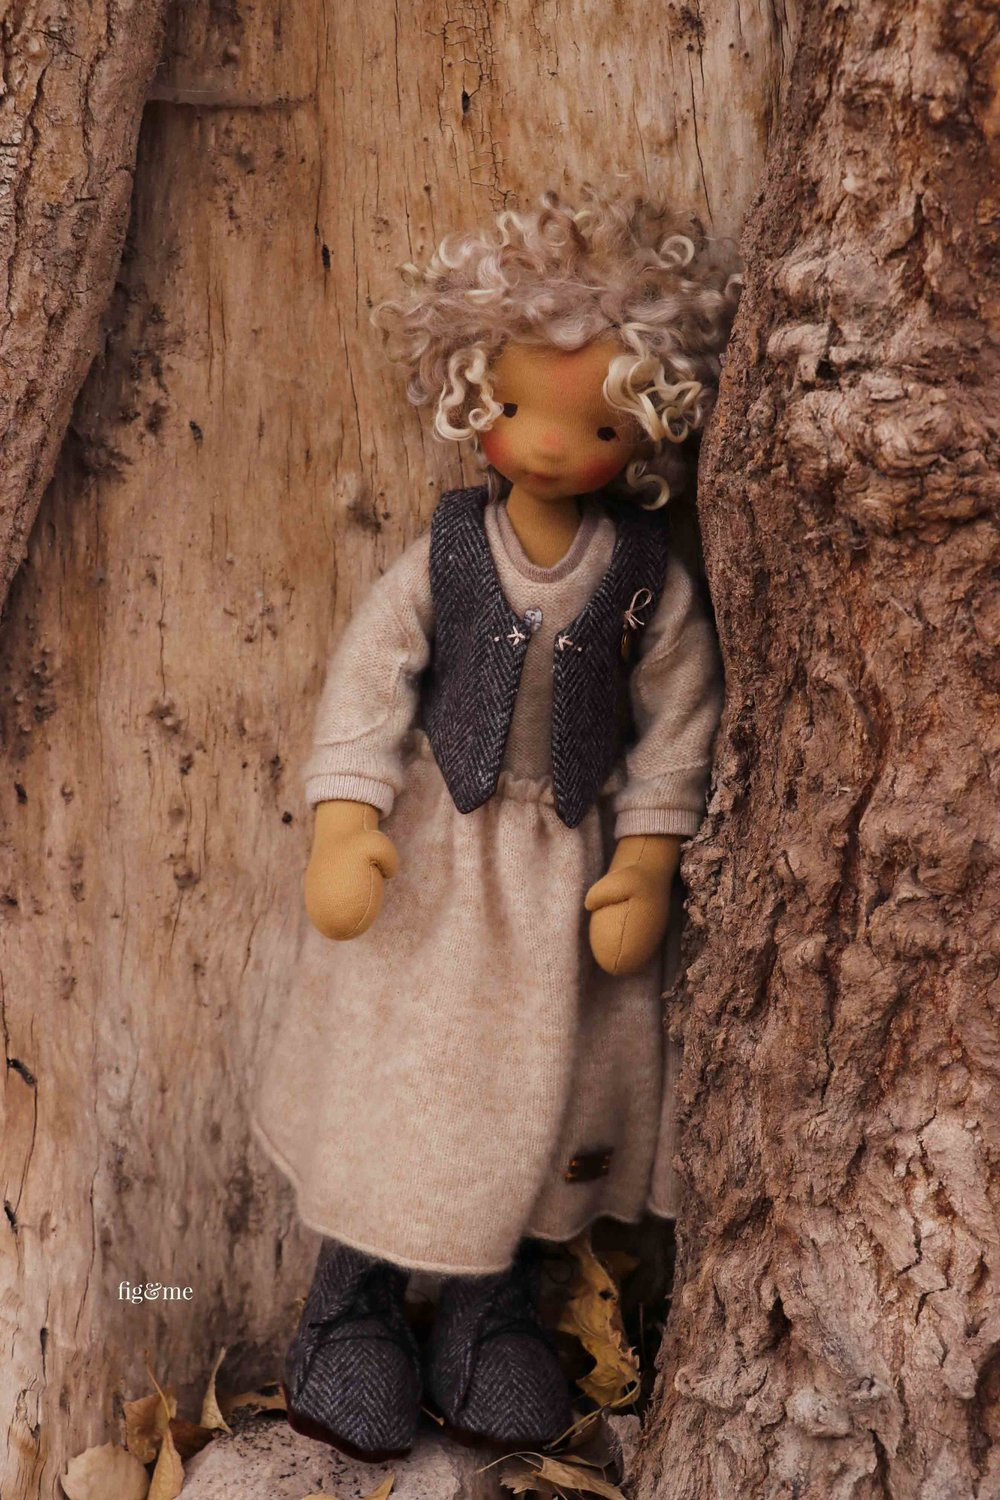 Winter, a Petite Fig doll by fig and me. Wearing her cashmere dress, twill vest and tall boots and sweet smile.